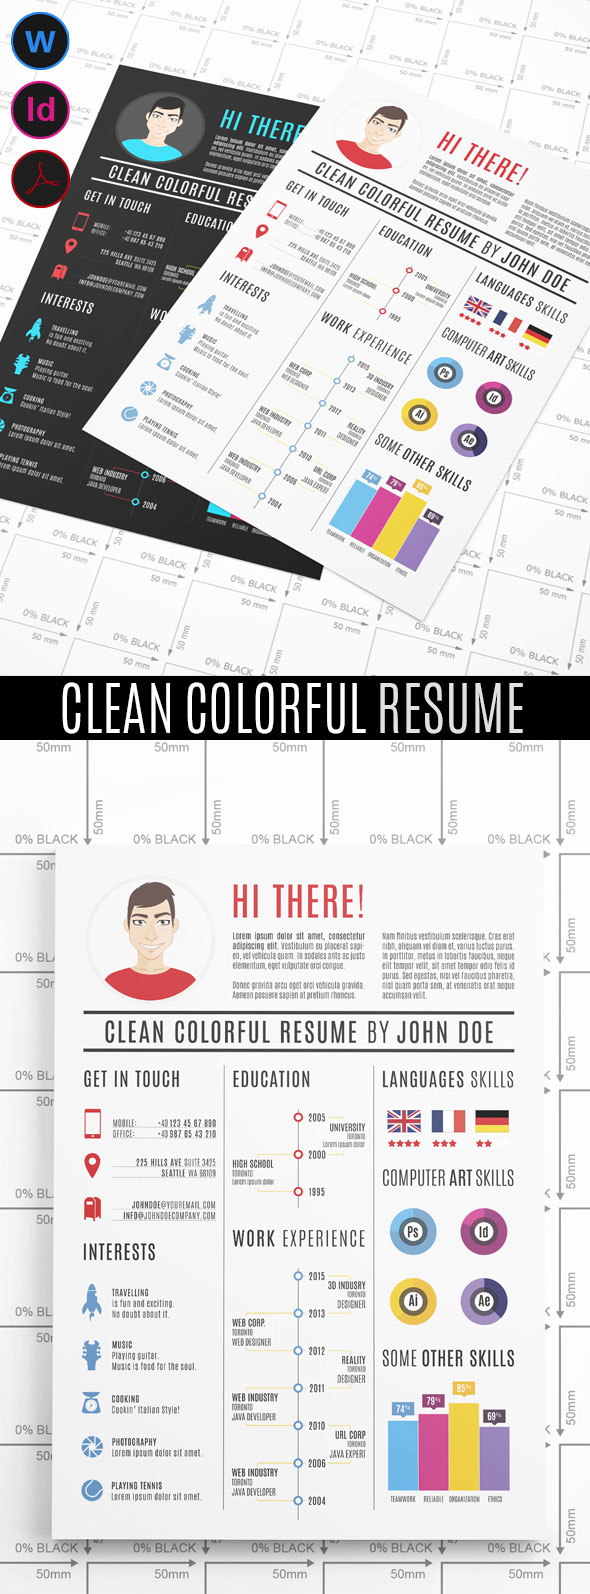 Colorful graphic design resume template